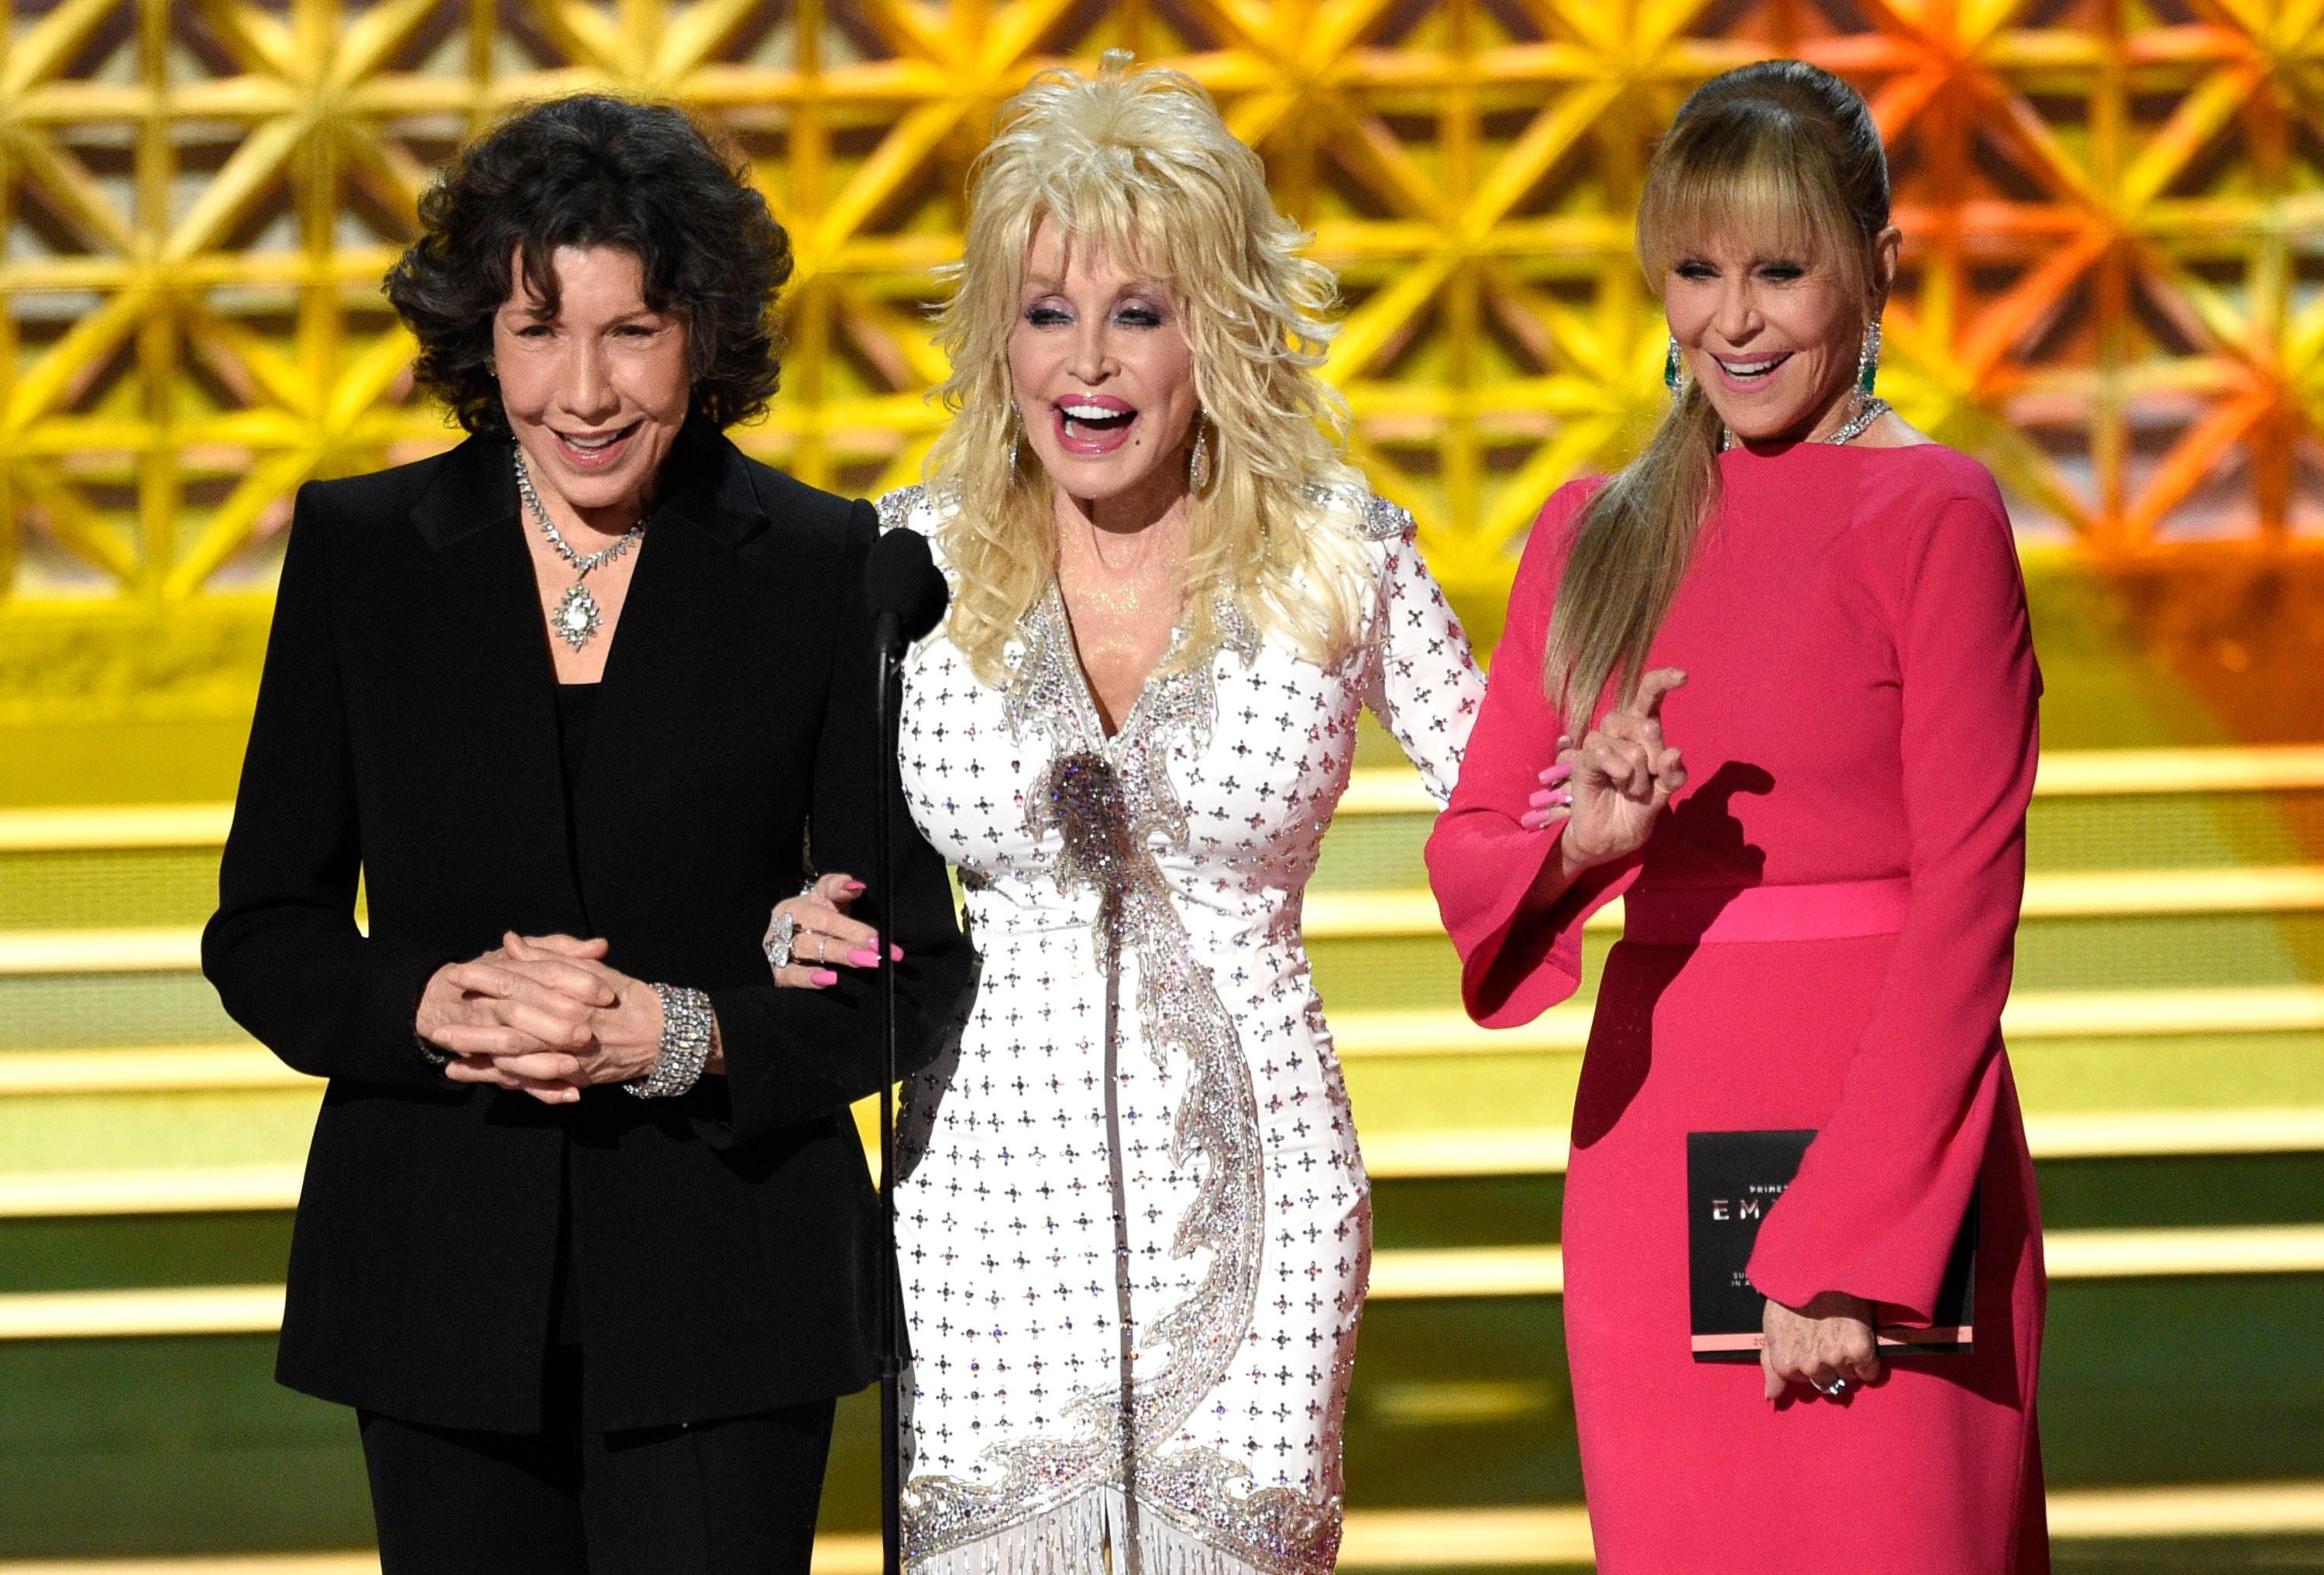 Lily Tomlin, from left, Dolly Parton and Jane Fonda present the award for outstanding supporting actor in a limited series or a movie at the 69th Primetime Emmy Awards on Sunday, Sept. 17, 2017, at the Microsoft Theater in Los Angeles. (Photo by Chris Pizzello/Invision/AP)